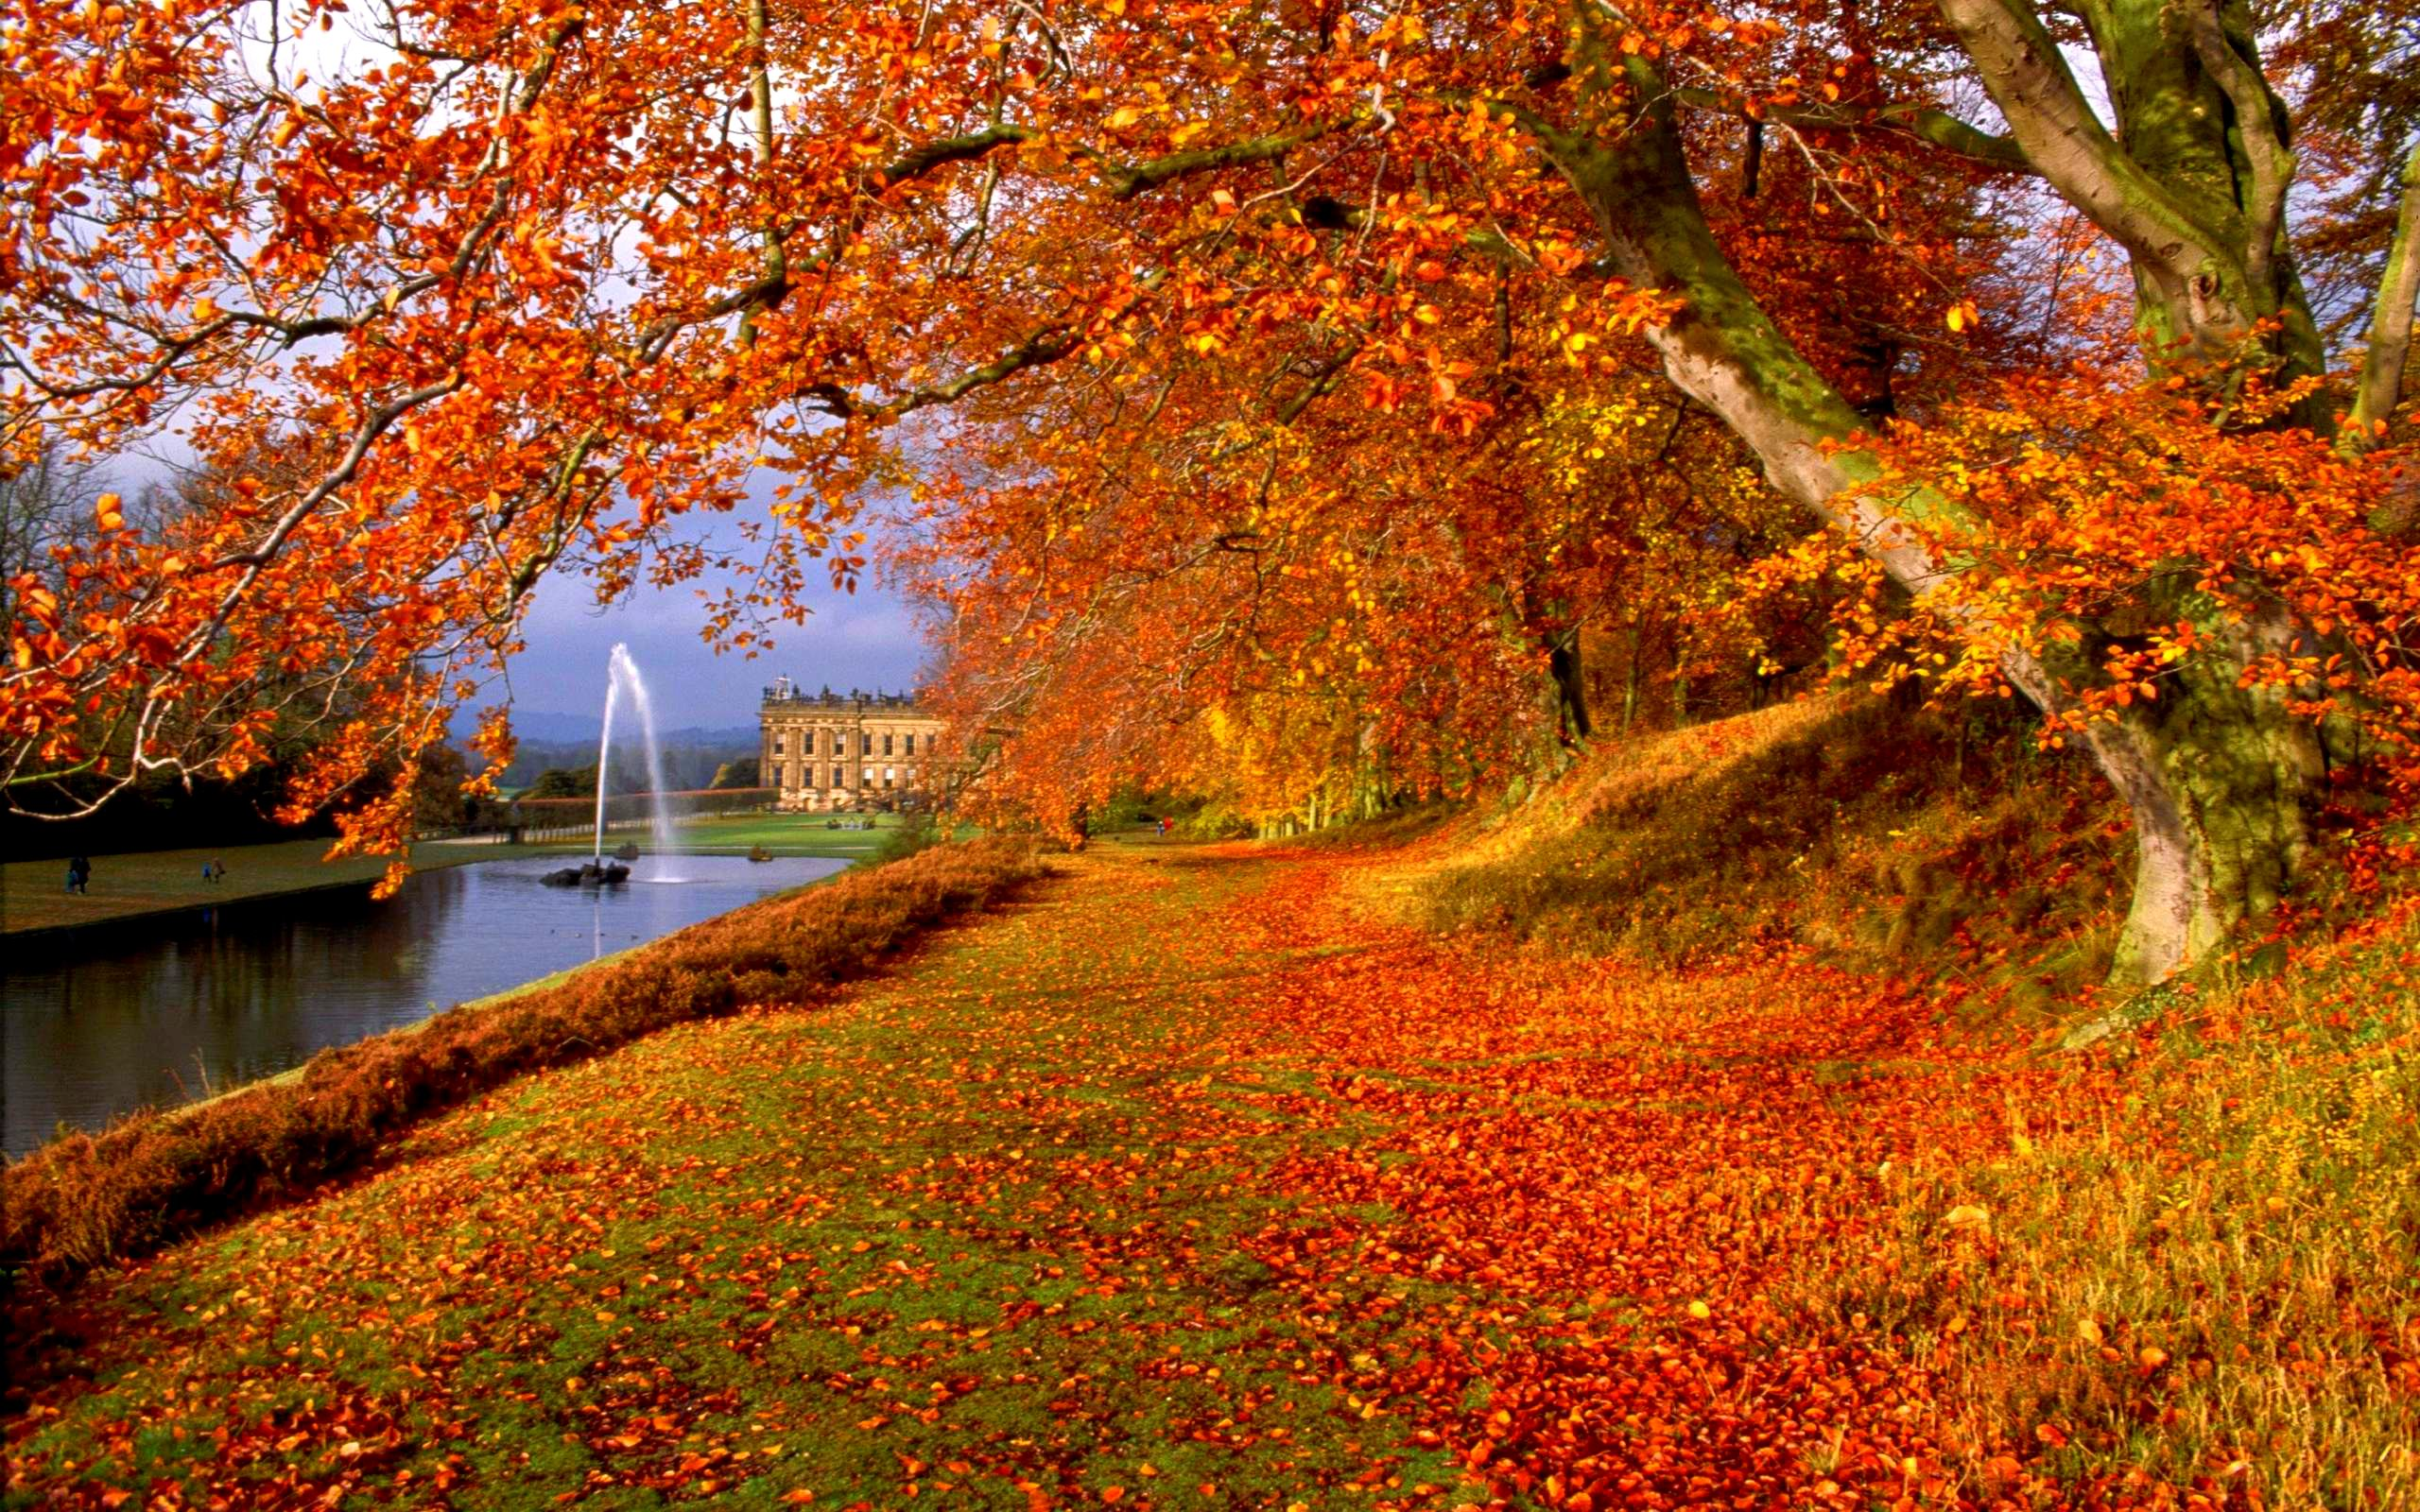 Autumn Leaves Fall In The Country 4245385 2560x1920